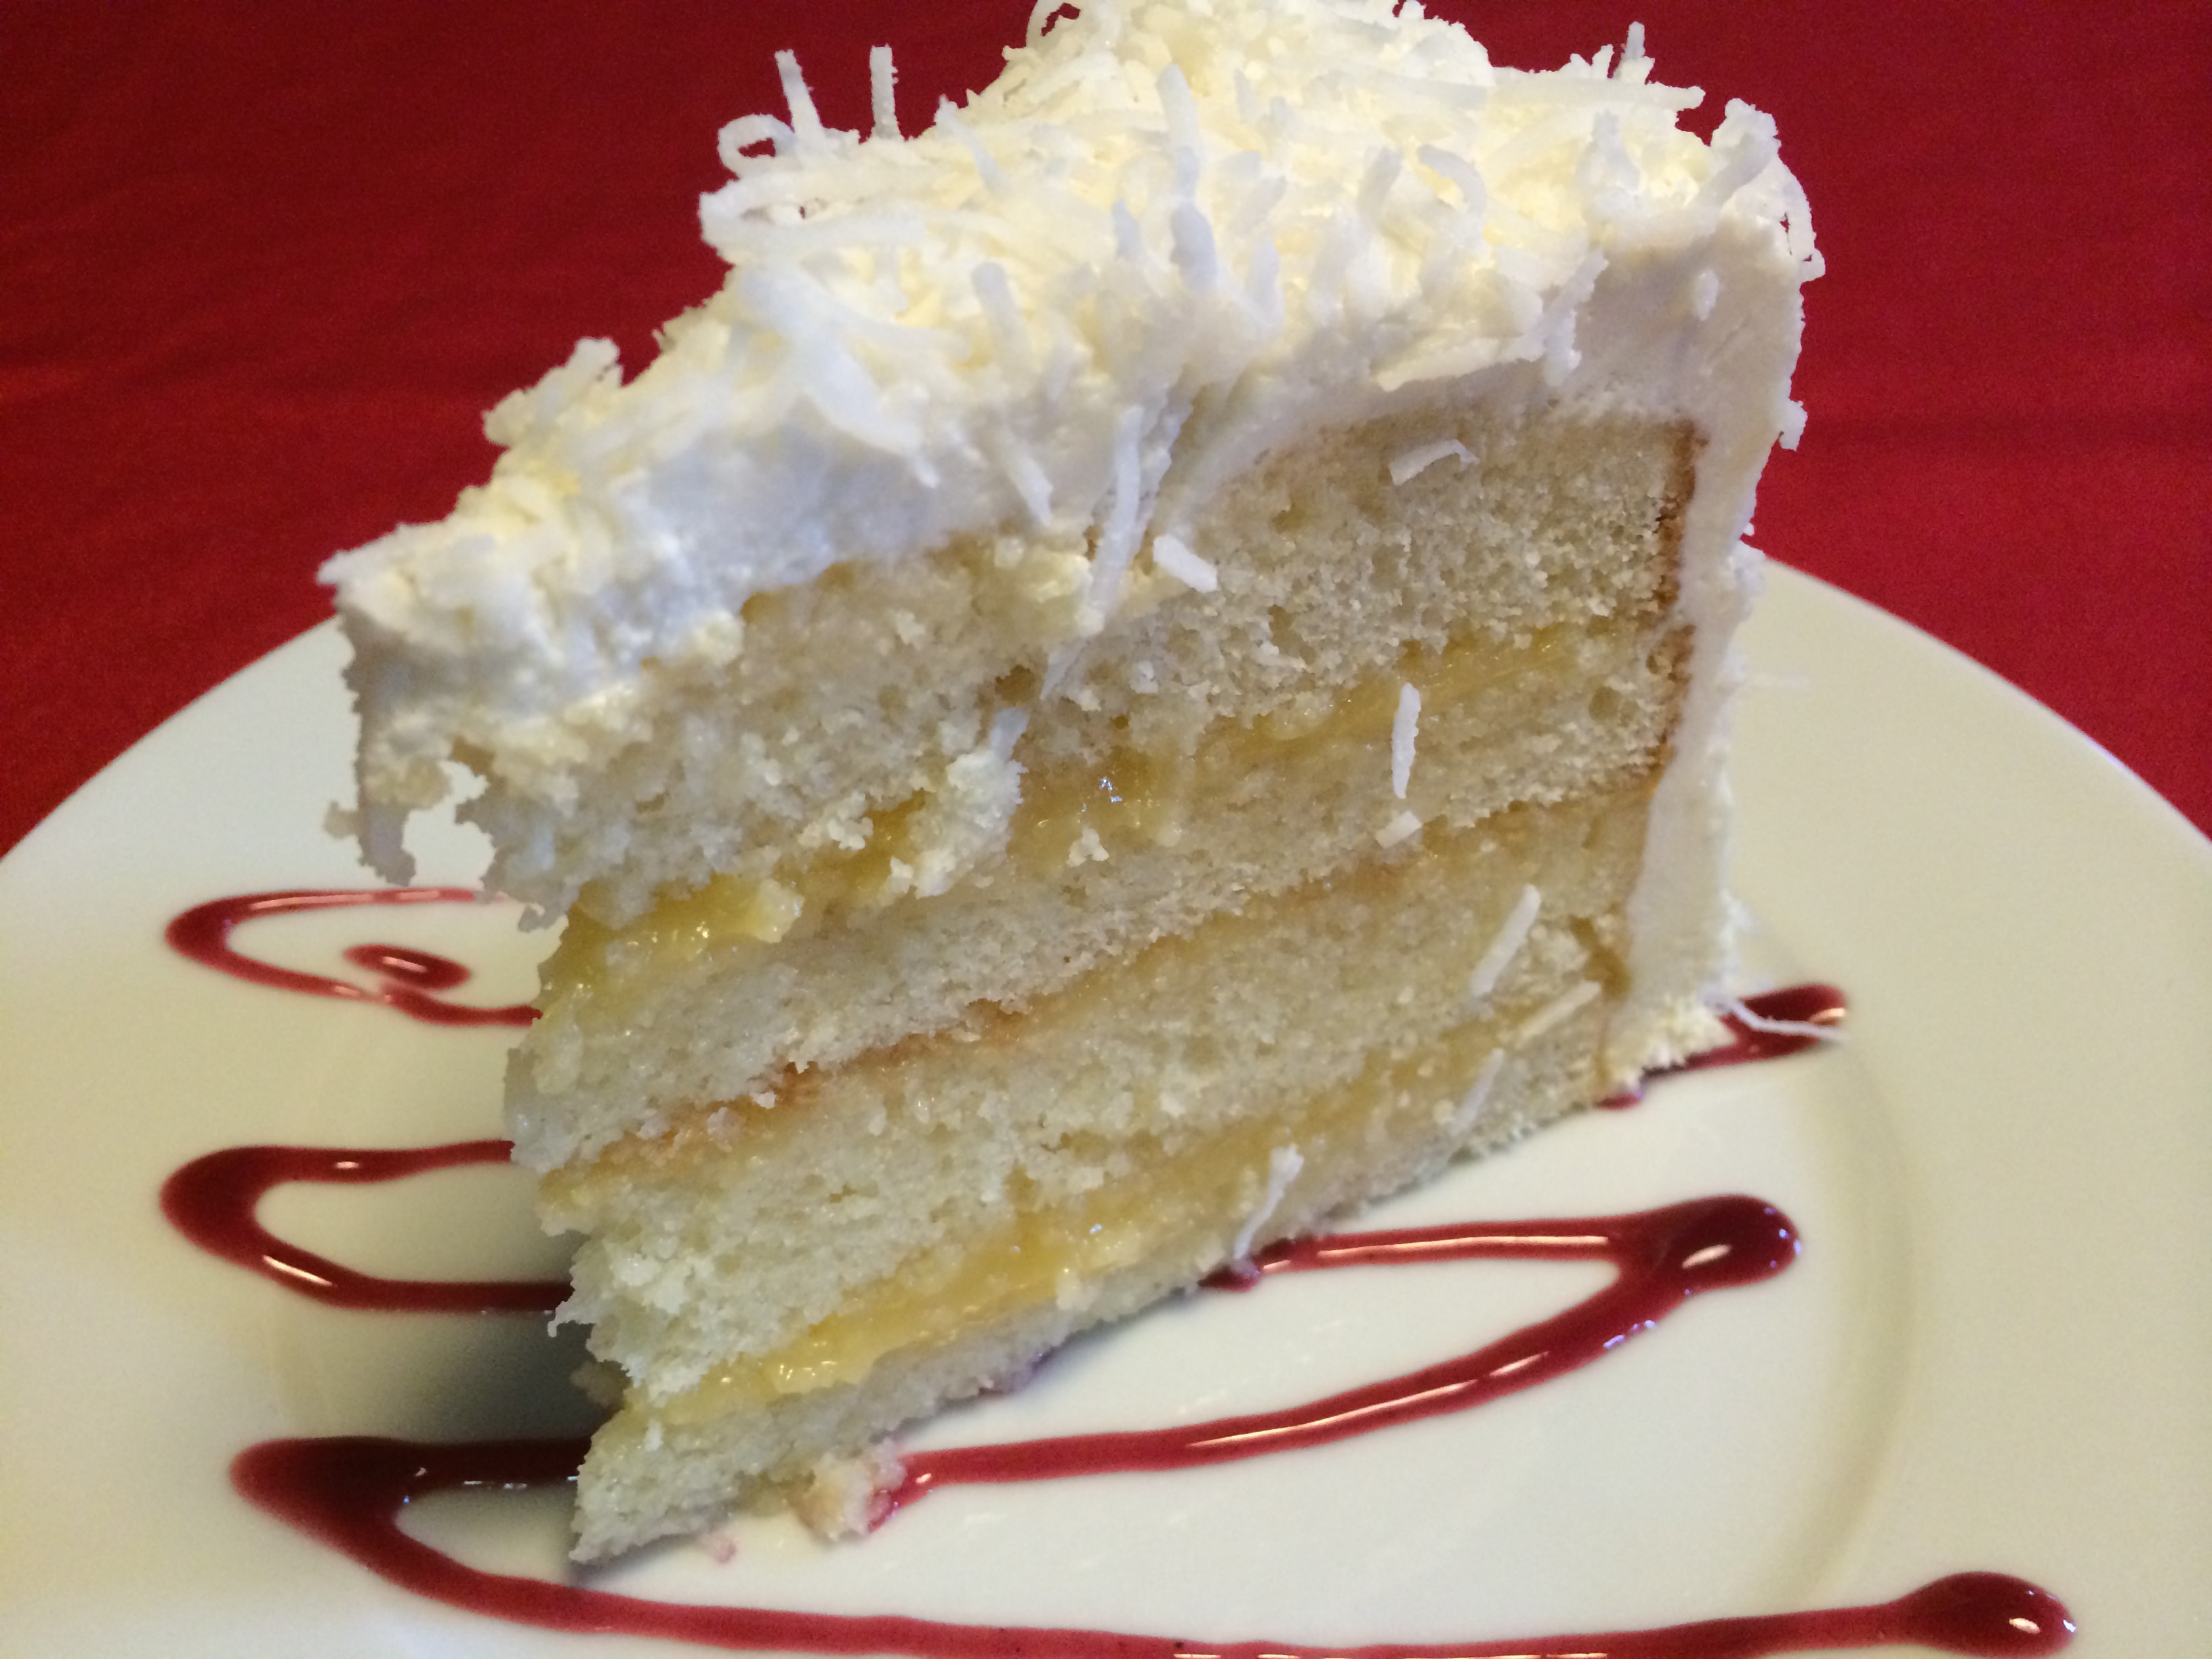 Lemon Coconut Torte